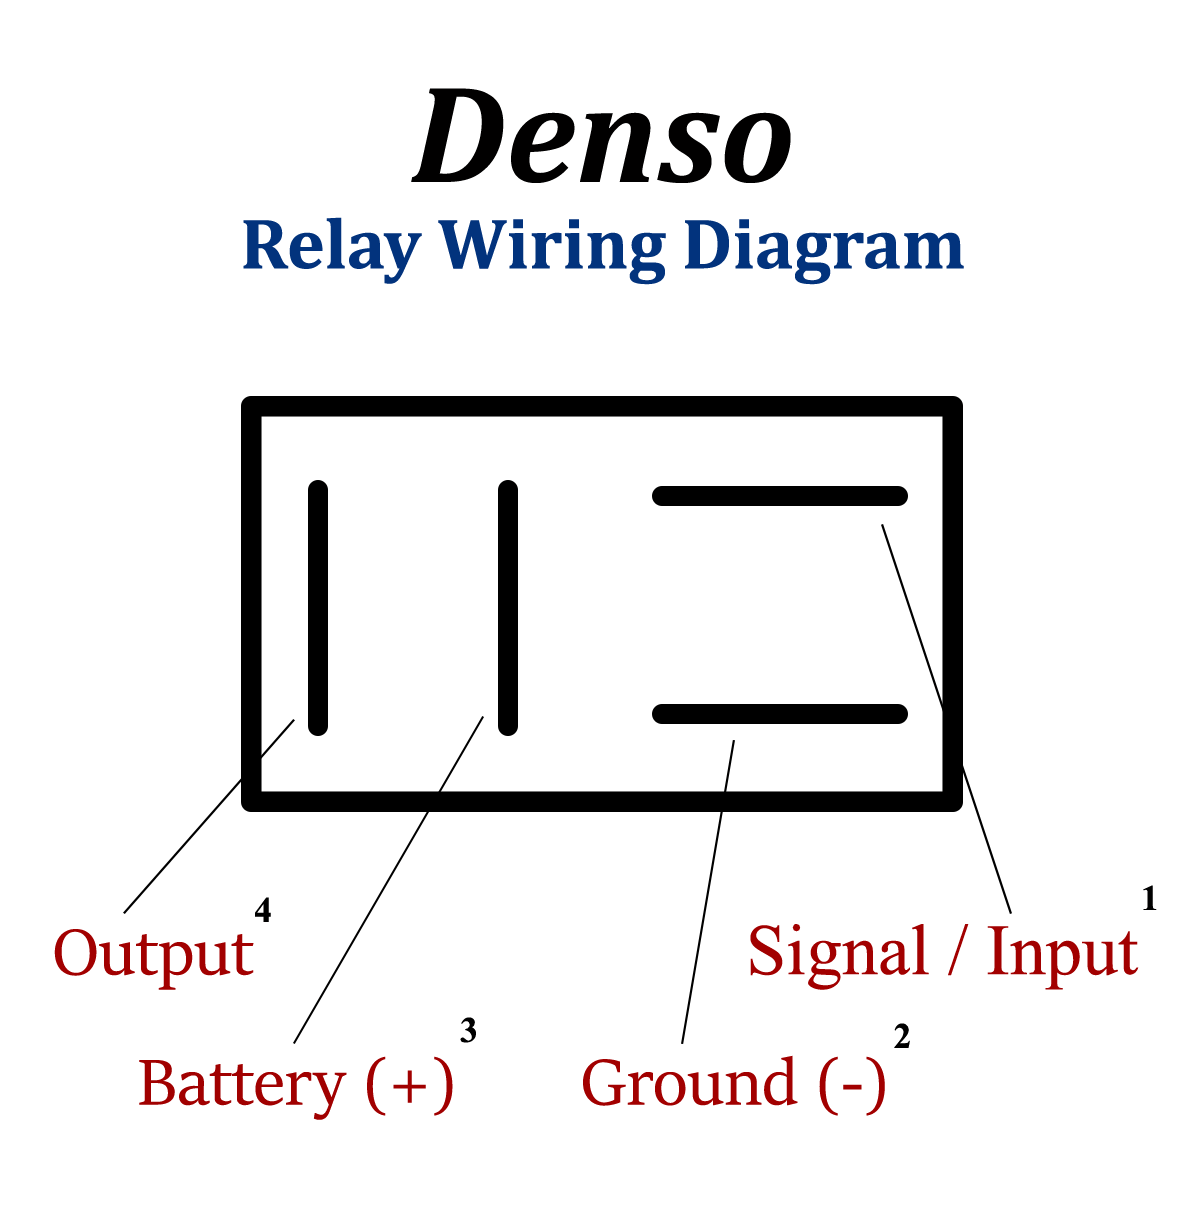 Denso Relay Wiring Diagram Benign Blog?resize\\\\\=297%2C300 mey ferguson 360 wiring diagram snatch block diagrams, smart car kinter ma 150 wiring diagram at gsmx.co